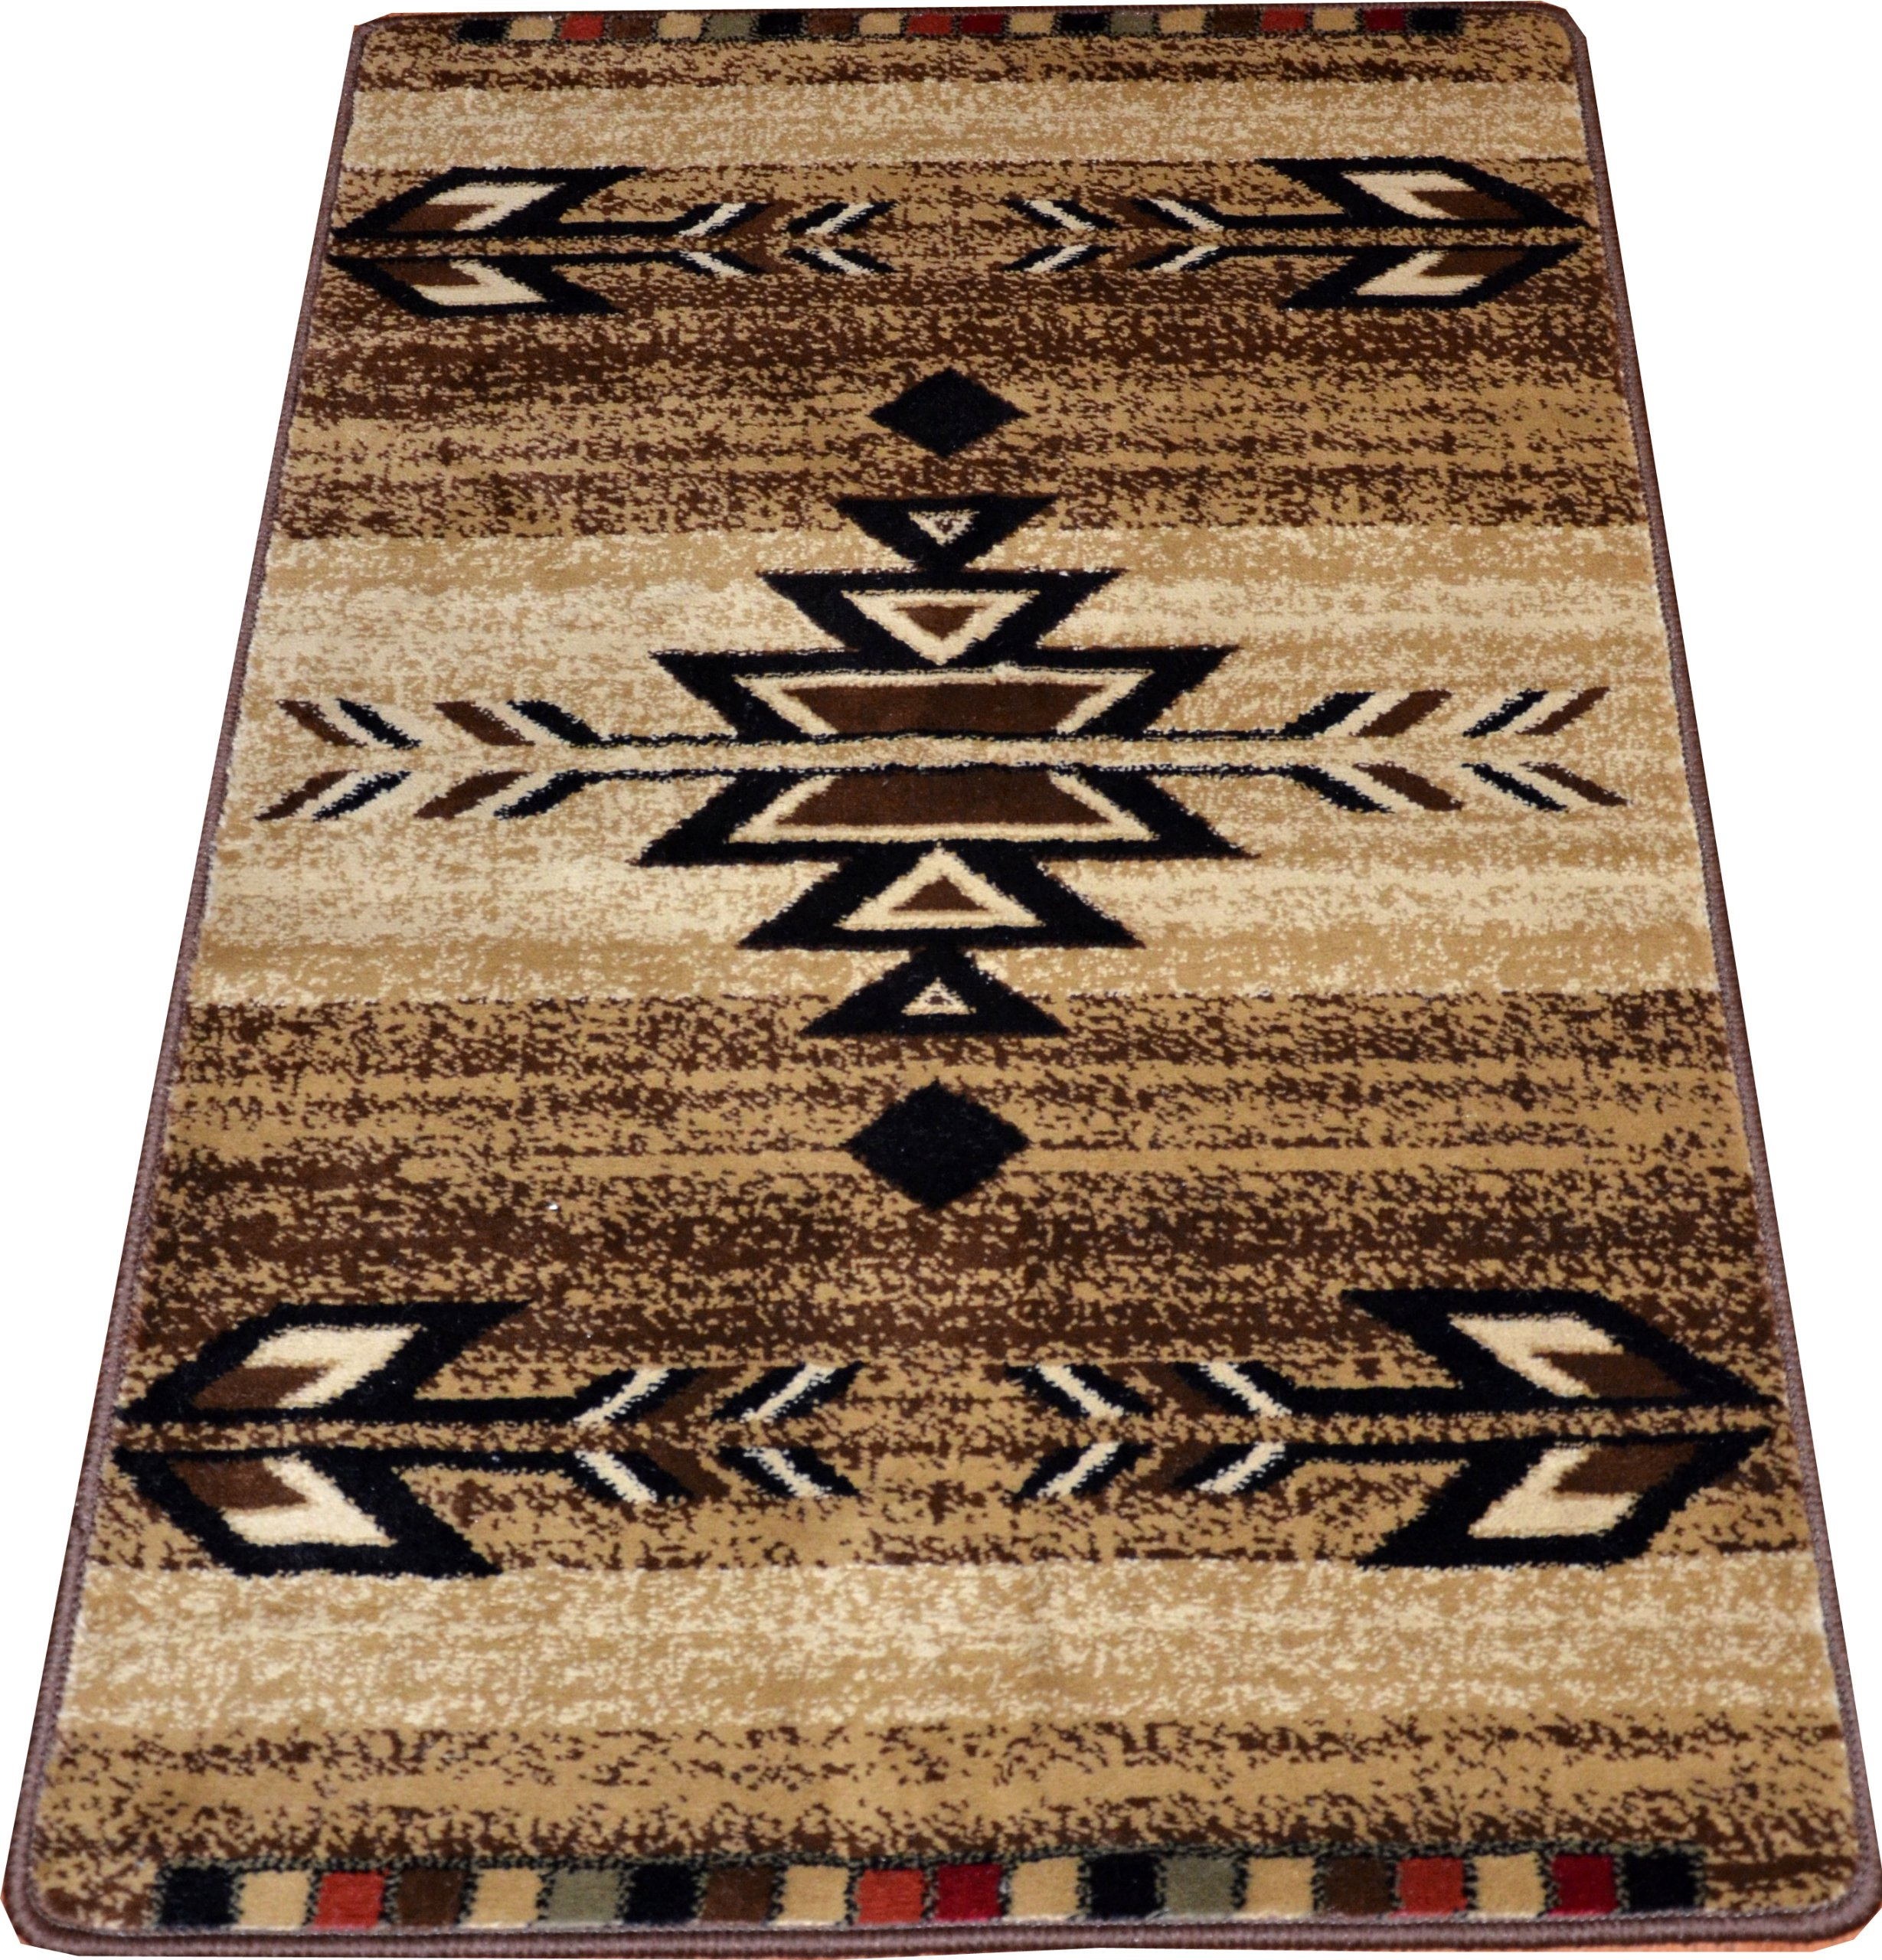 "Dean Santa Fe Beige Southwestern Lodge Cabin Carpet Rug Runner Mat, Size: Approximately 50"" x 31"" - Unique Southwestern, lodge, cabin design Warm, plush, and comfortable under foot Dean Flooring Company exclusive! - runner-rugs, entryway-furniture-decor, entryway-laundry-room - A1dS3fiQUFL -"